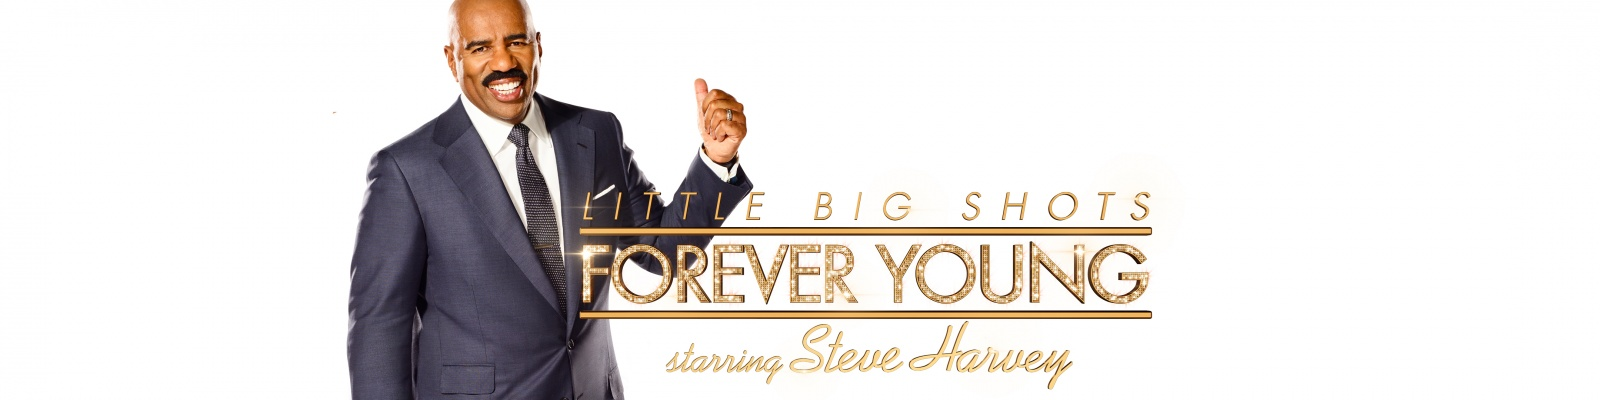 When Does Little Big Shots: Forever Young Season 2 Start On NBC? Release Date